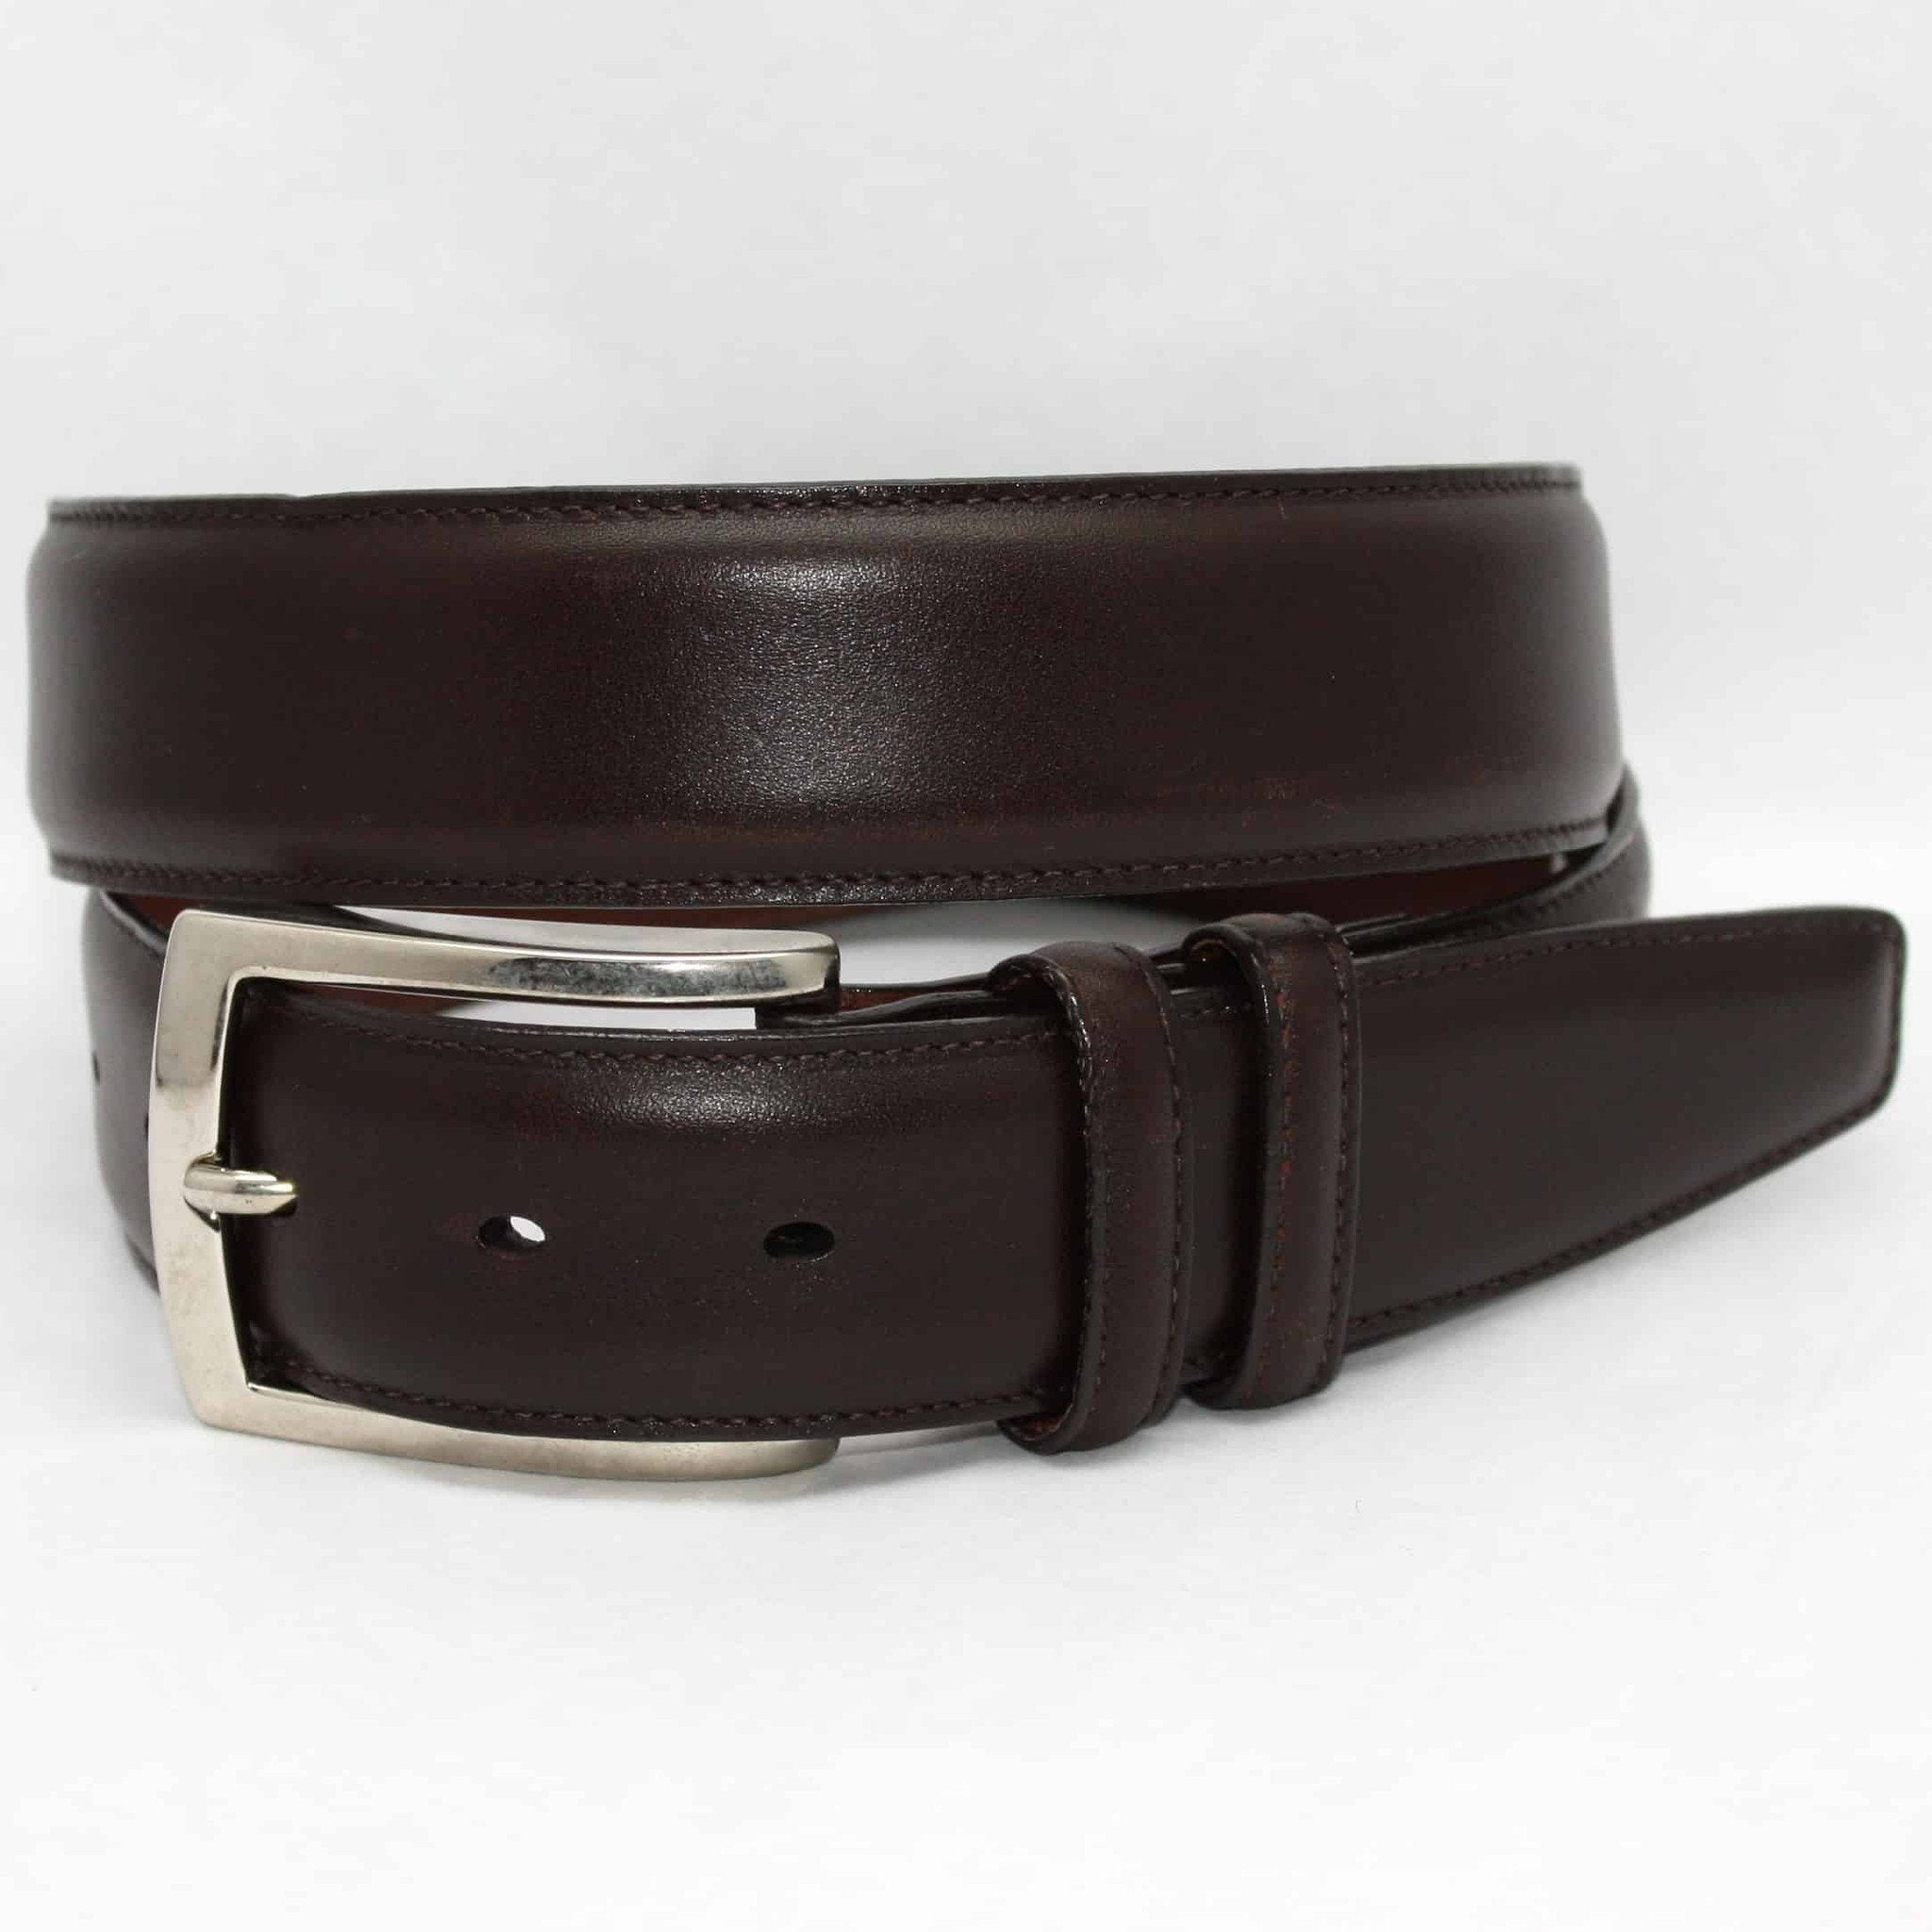 Italian Burnished Calfskin Belt - Brown,BELT,GentRow.com, | GentRow.com